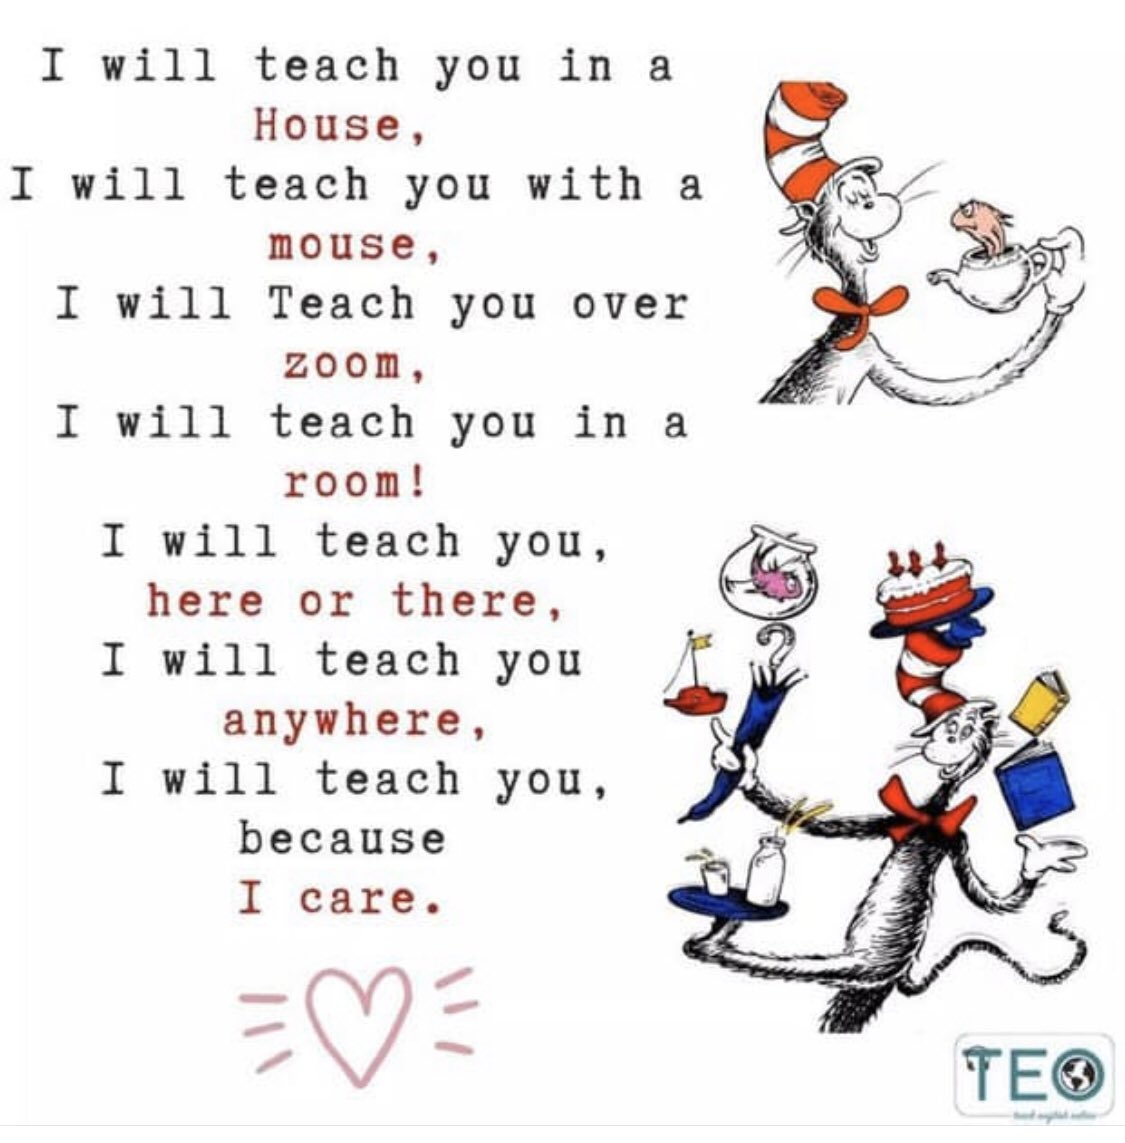 """Holly Draughn on Twitter: """"#soaringeagles , we will teach you here or  there. We will teach you ANYWHERE! I sure do miss Dr Seuss week when we  were all together. @AldermanEagles #nhcschat…"""